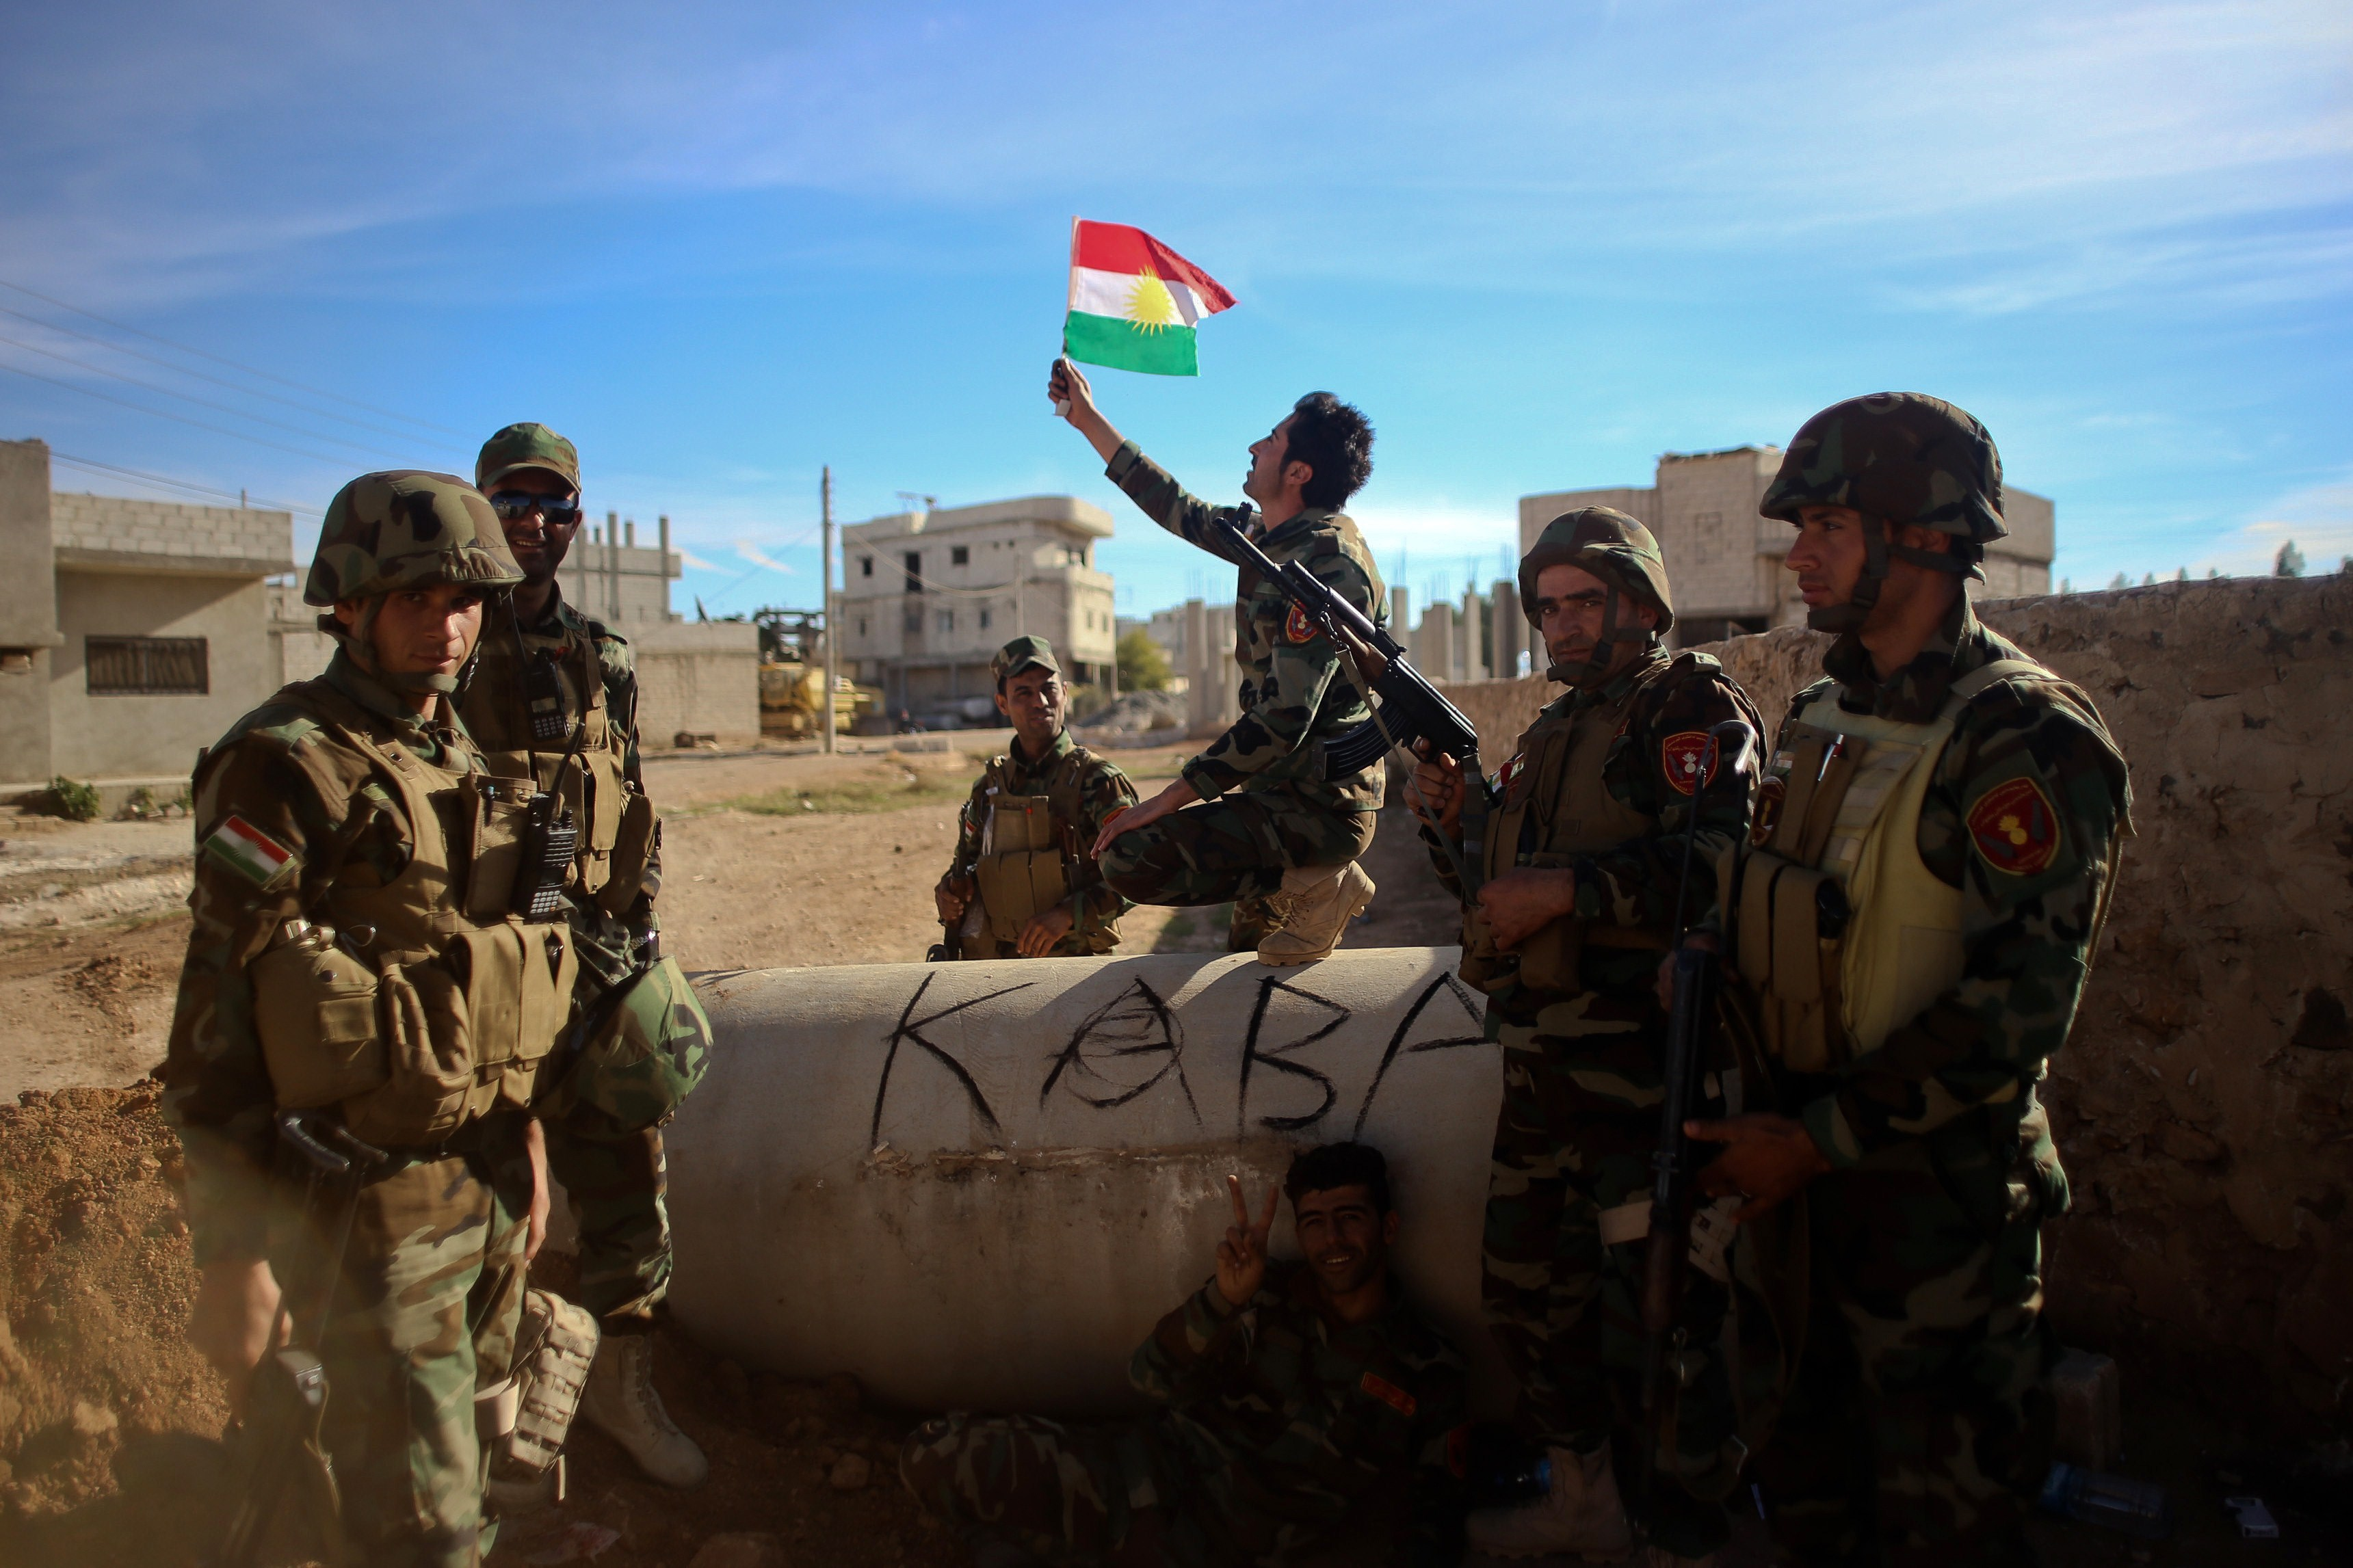 Kurdish Peshmerga fighters pose for a picture during a break in fighting against Islamic State (IS) group on November 8, 2014 in the Syrian besieged border town of Ain al-Arab (known as Kobane by the Kurds). US-led air strikes hit jihadist positions in the north and east of Syria, including an oil field, the Syrian Observatory for Human Rights said. AFP PHOTO / AHMED DEEB (Photo credit should read AHMED DEEB/AFP/Getty Images)